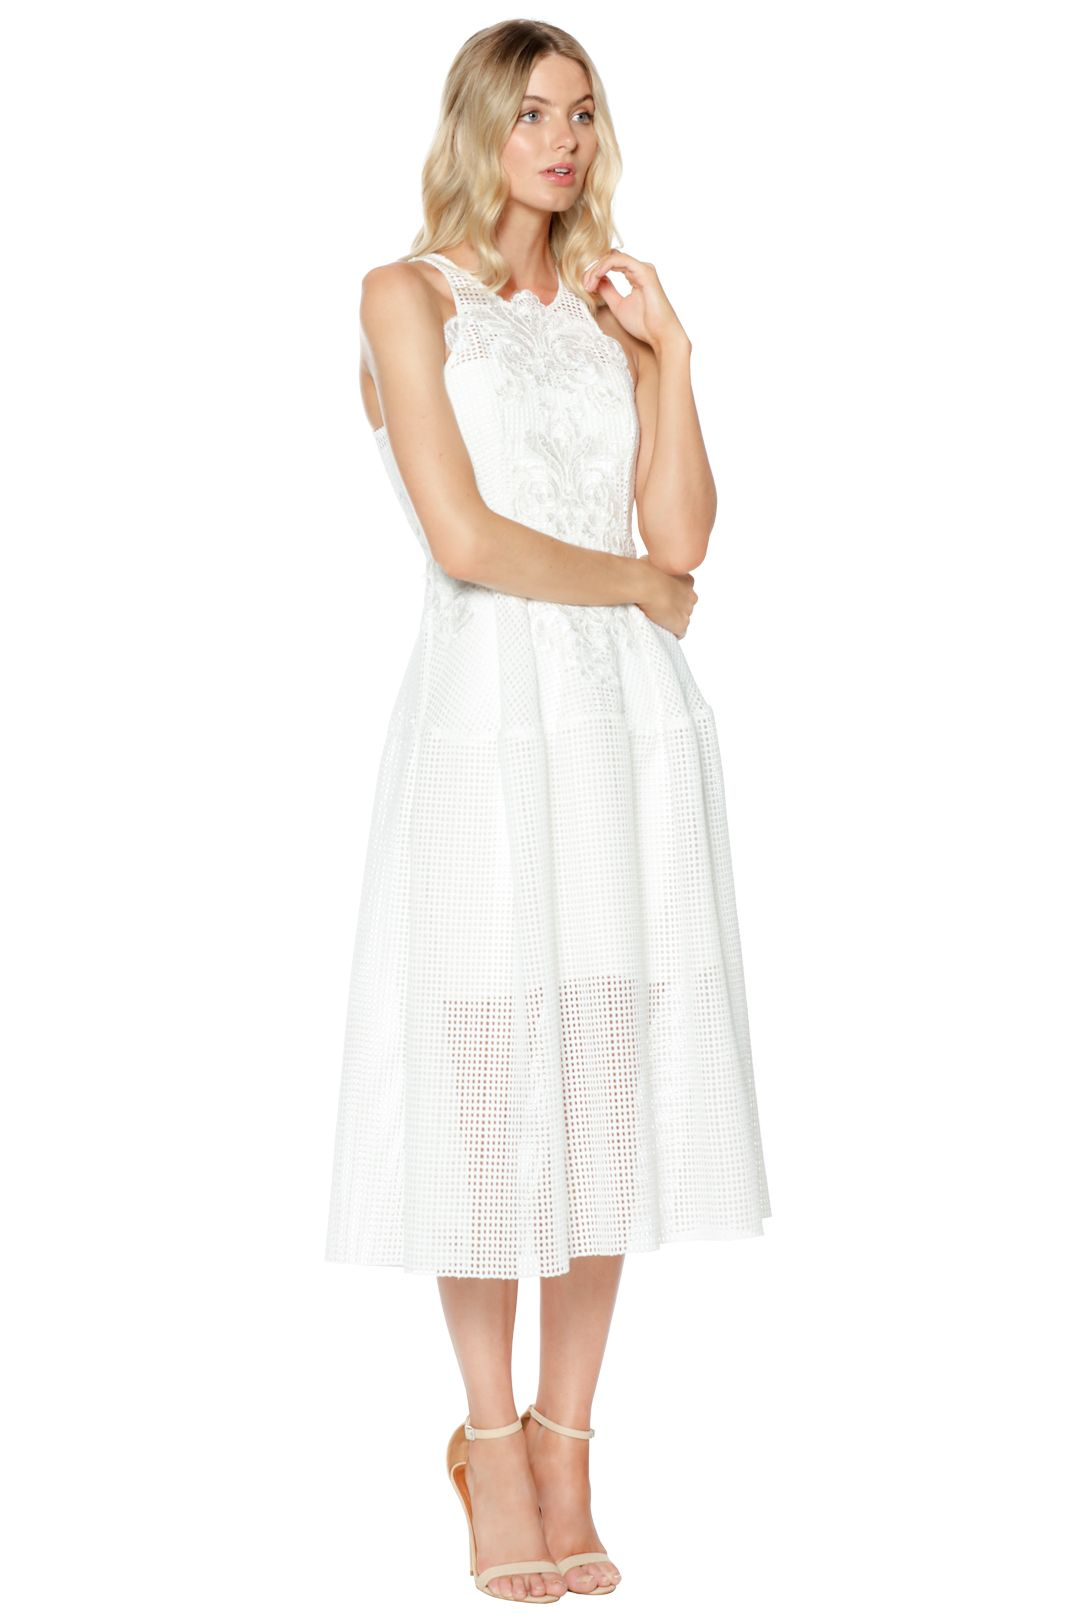 Thurley - Bianca Embroidered Dress - White - Side